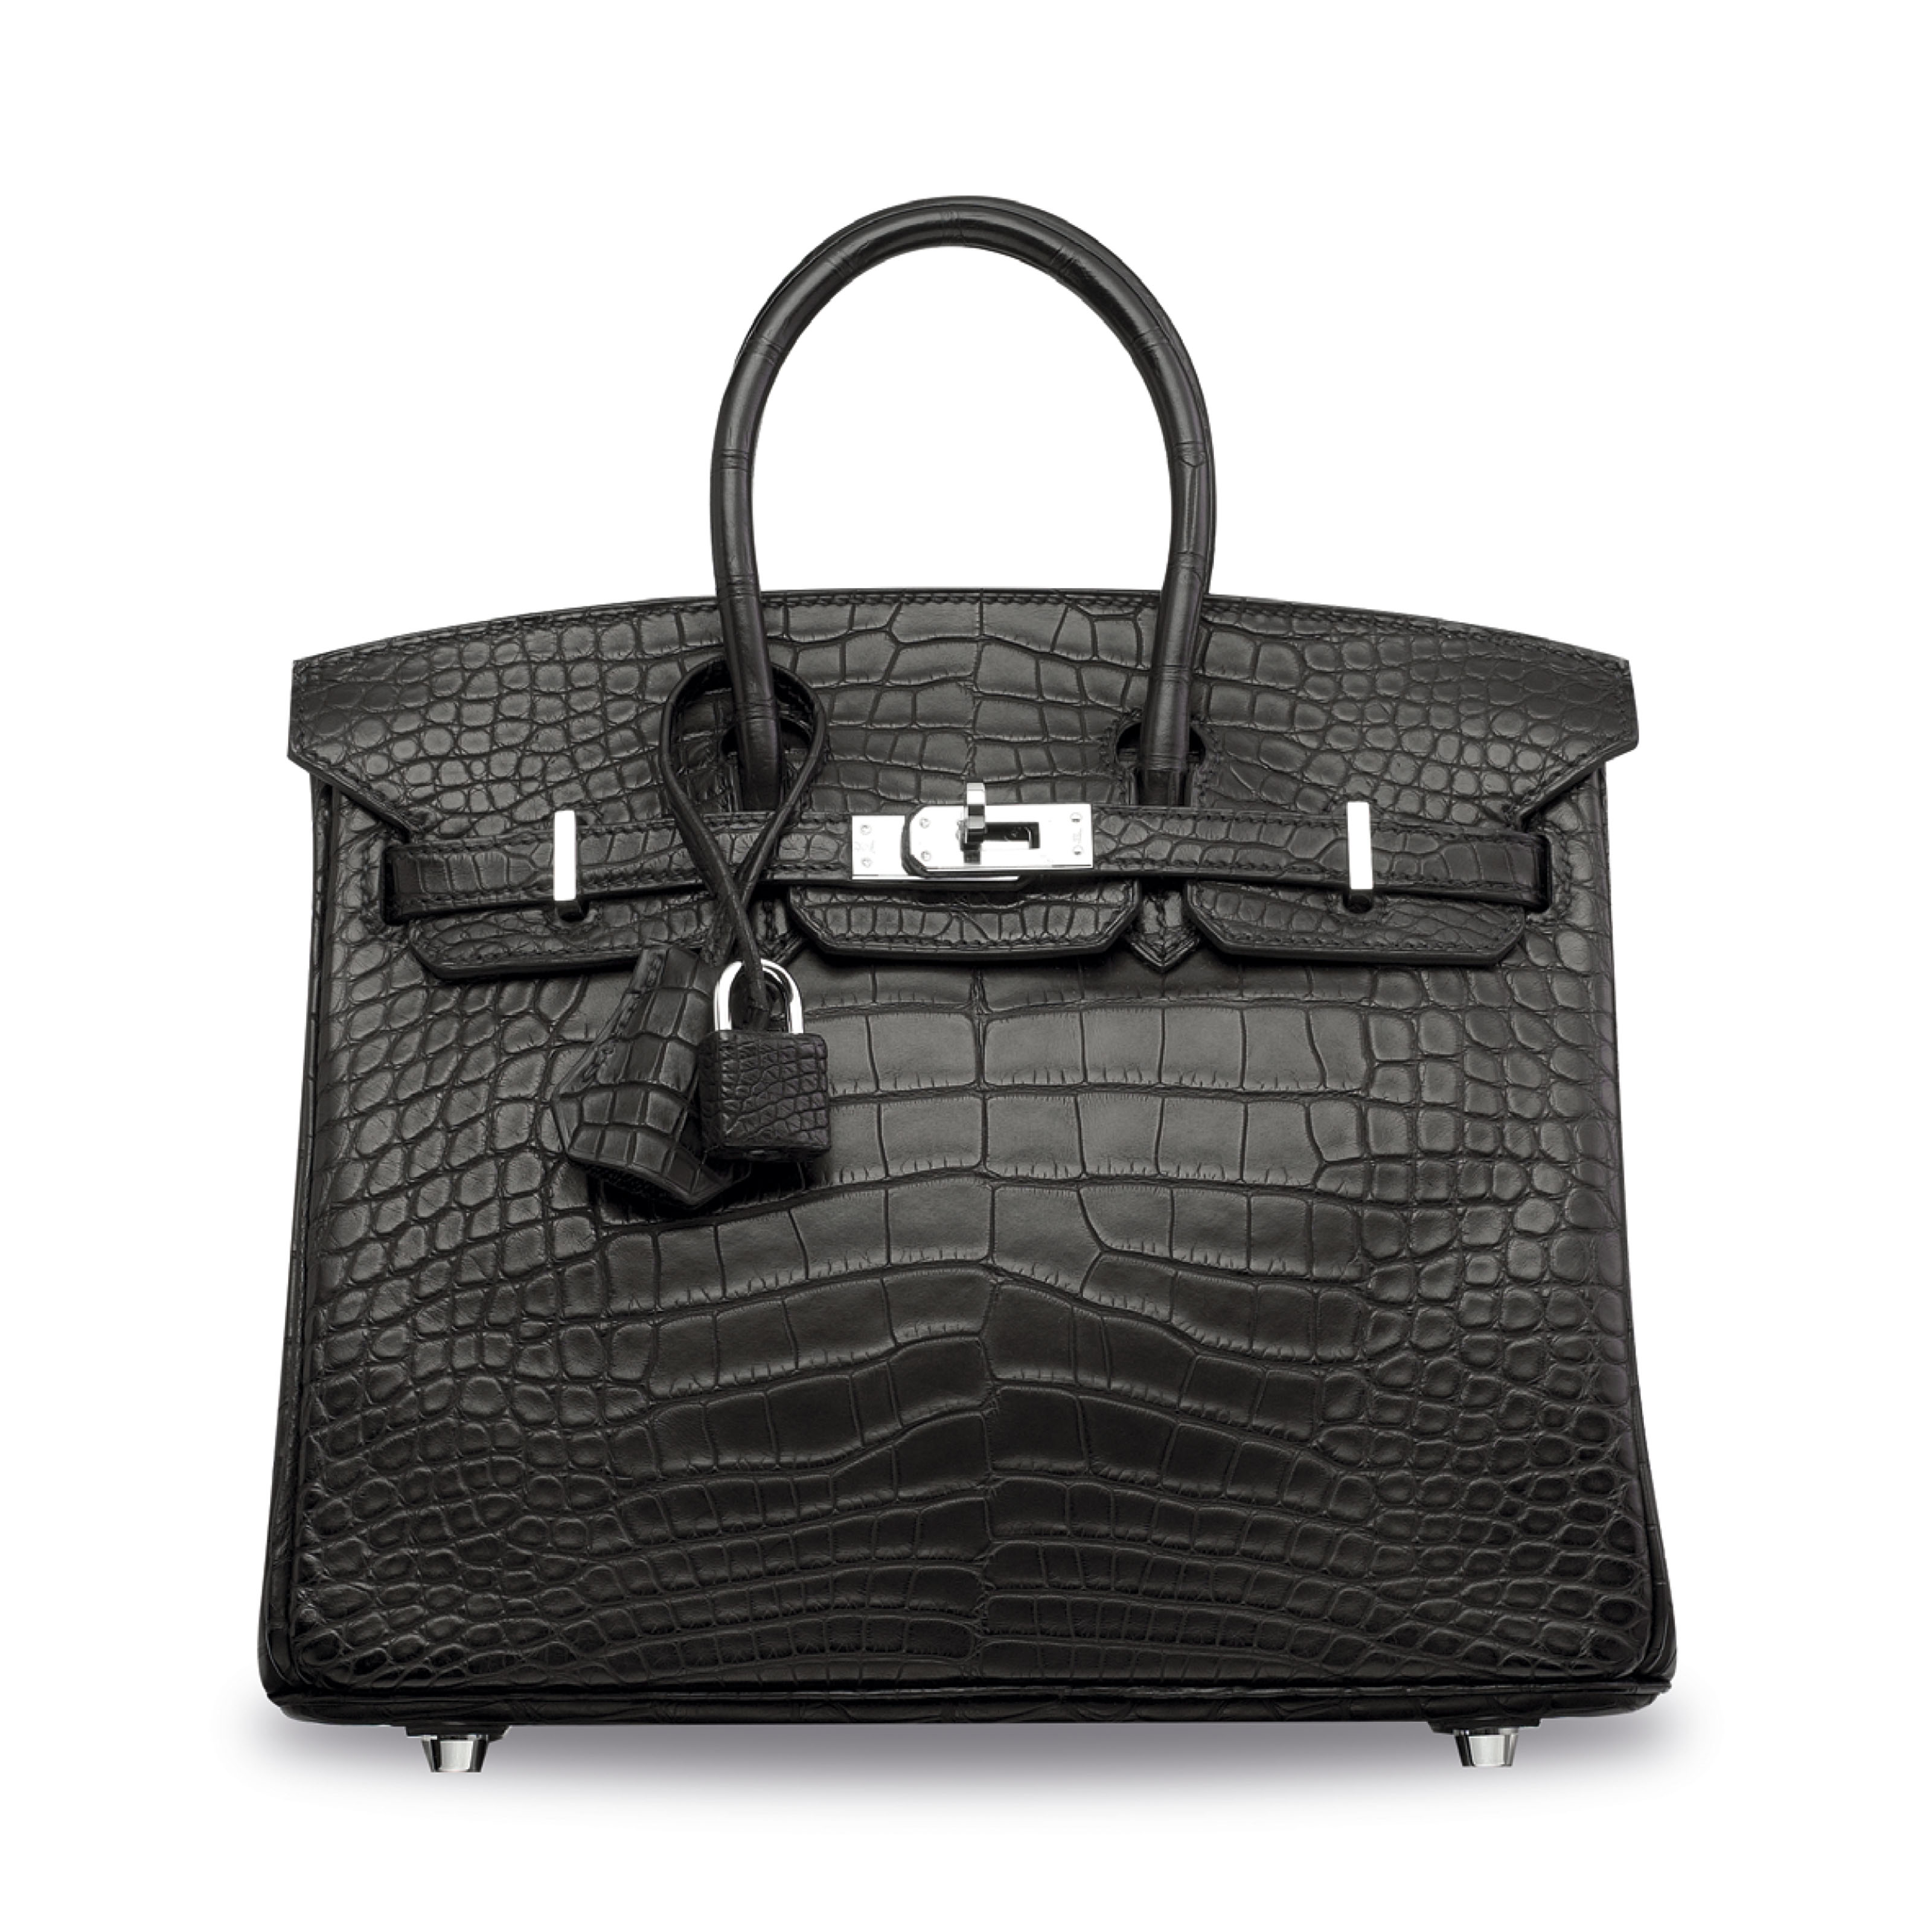 A MATTE BLACK ALLIGATOR BIRKIN